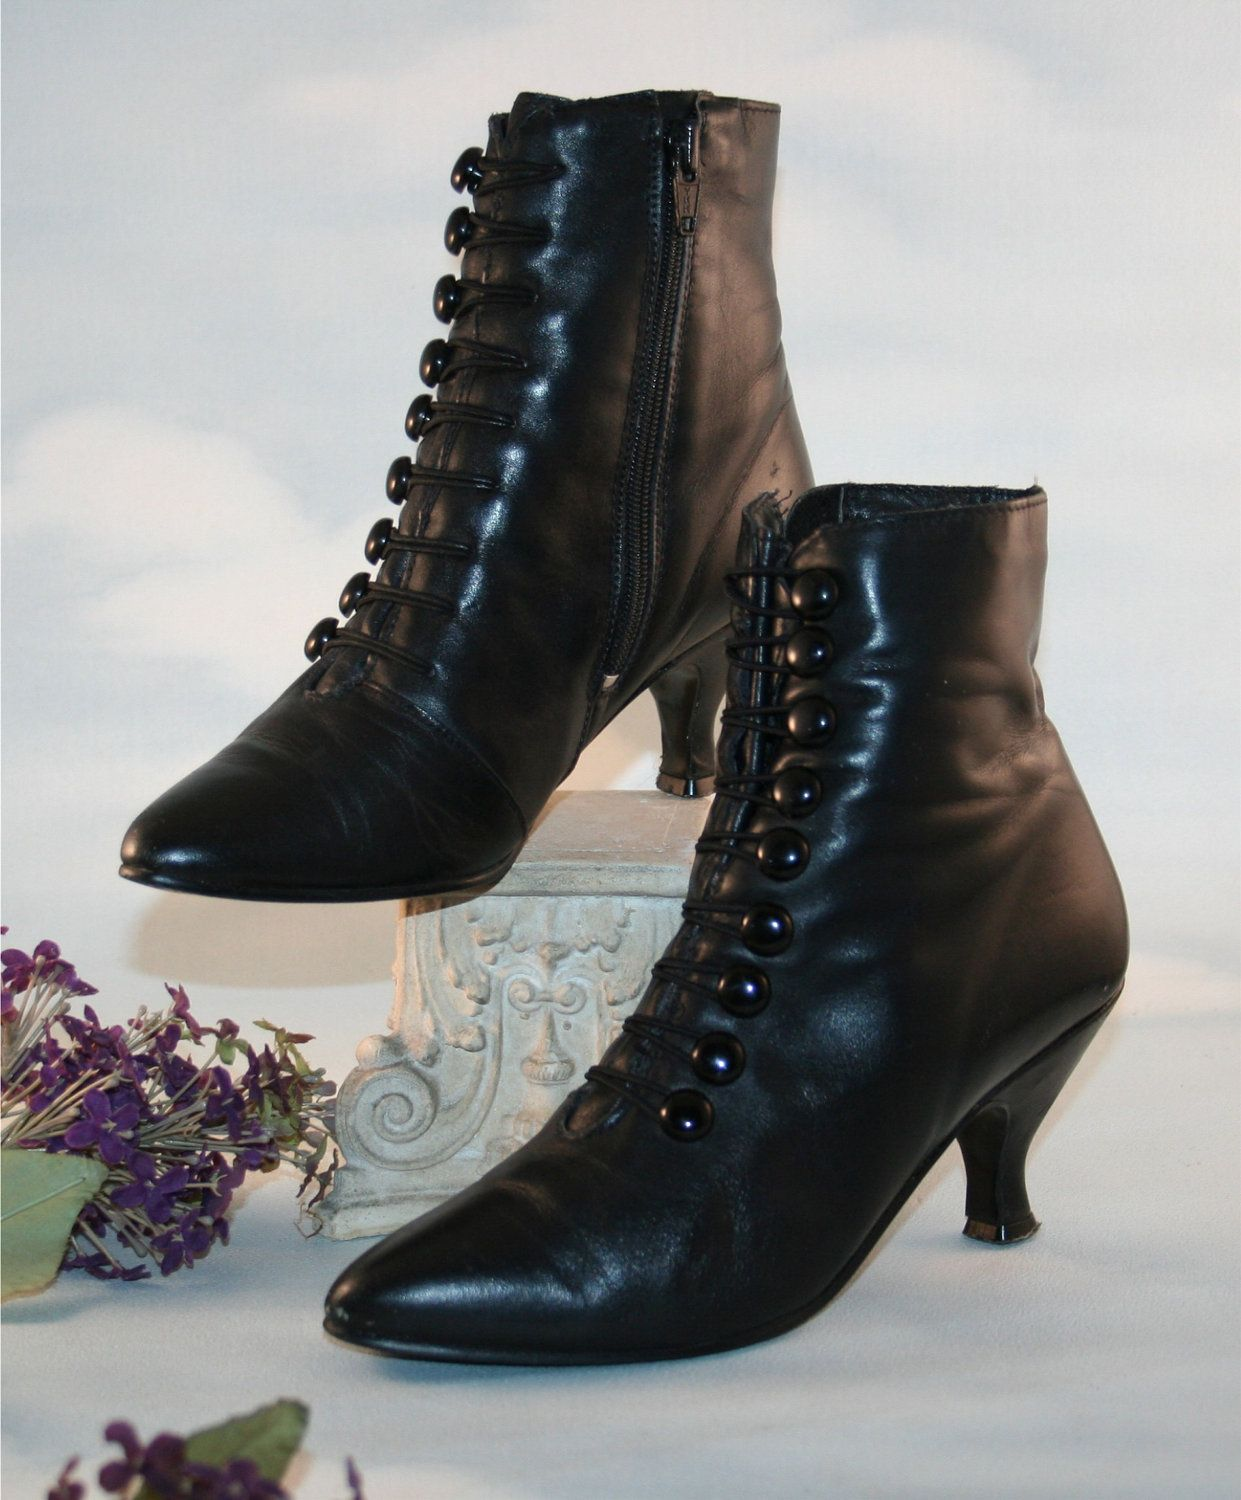 36c8cda63a098c Boots Pagan Wicca Witch  Vintage Victorian Gaslight Romantic Black Leather  Button-Up Witch Boots.